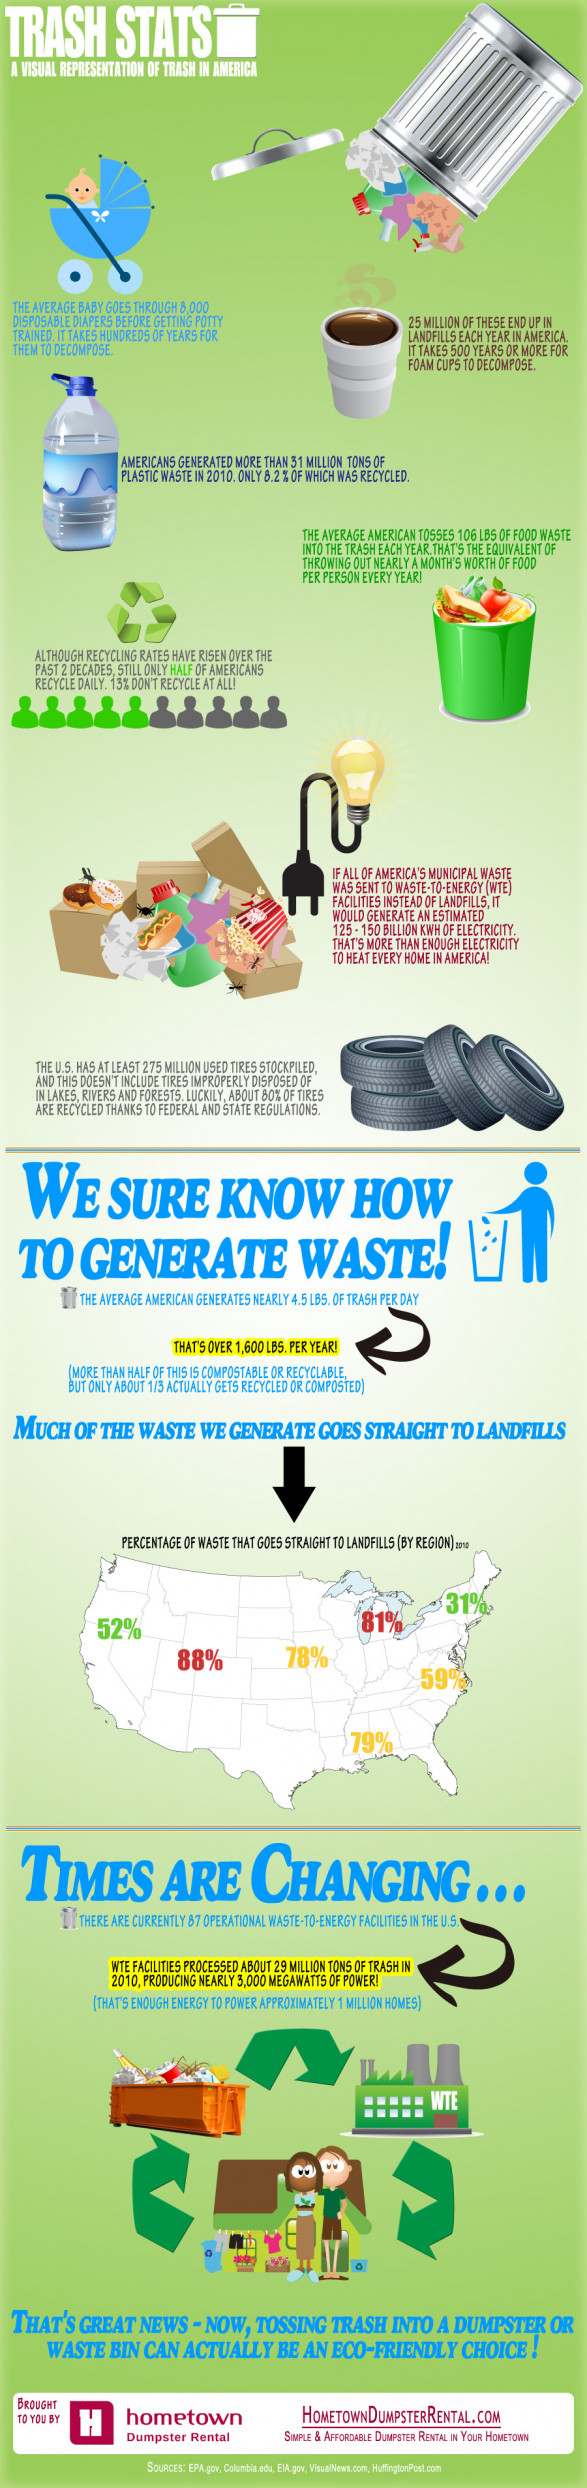 Trash Stats -- Waste in America